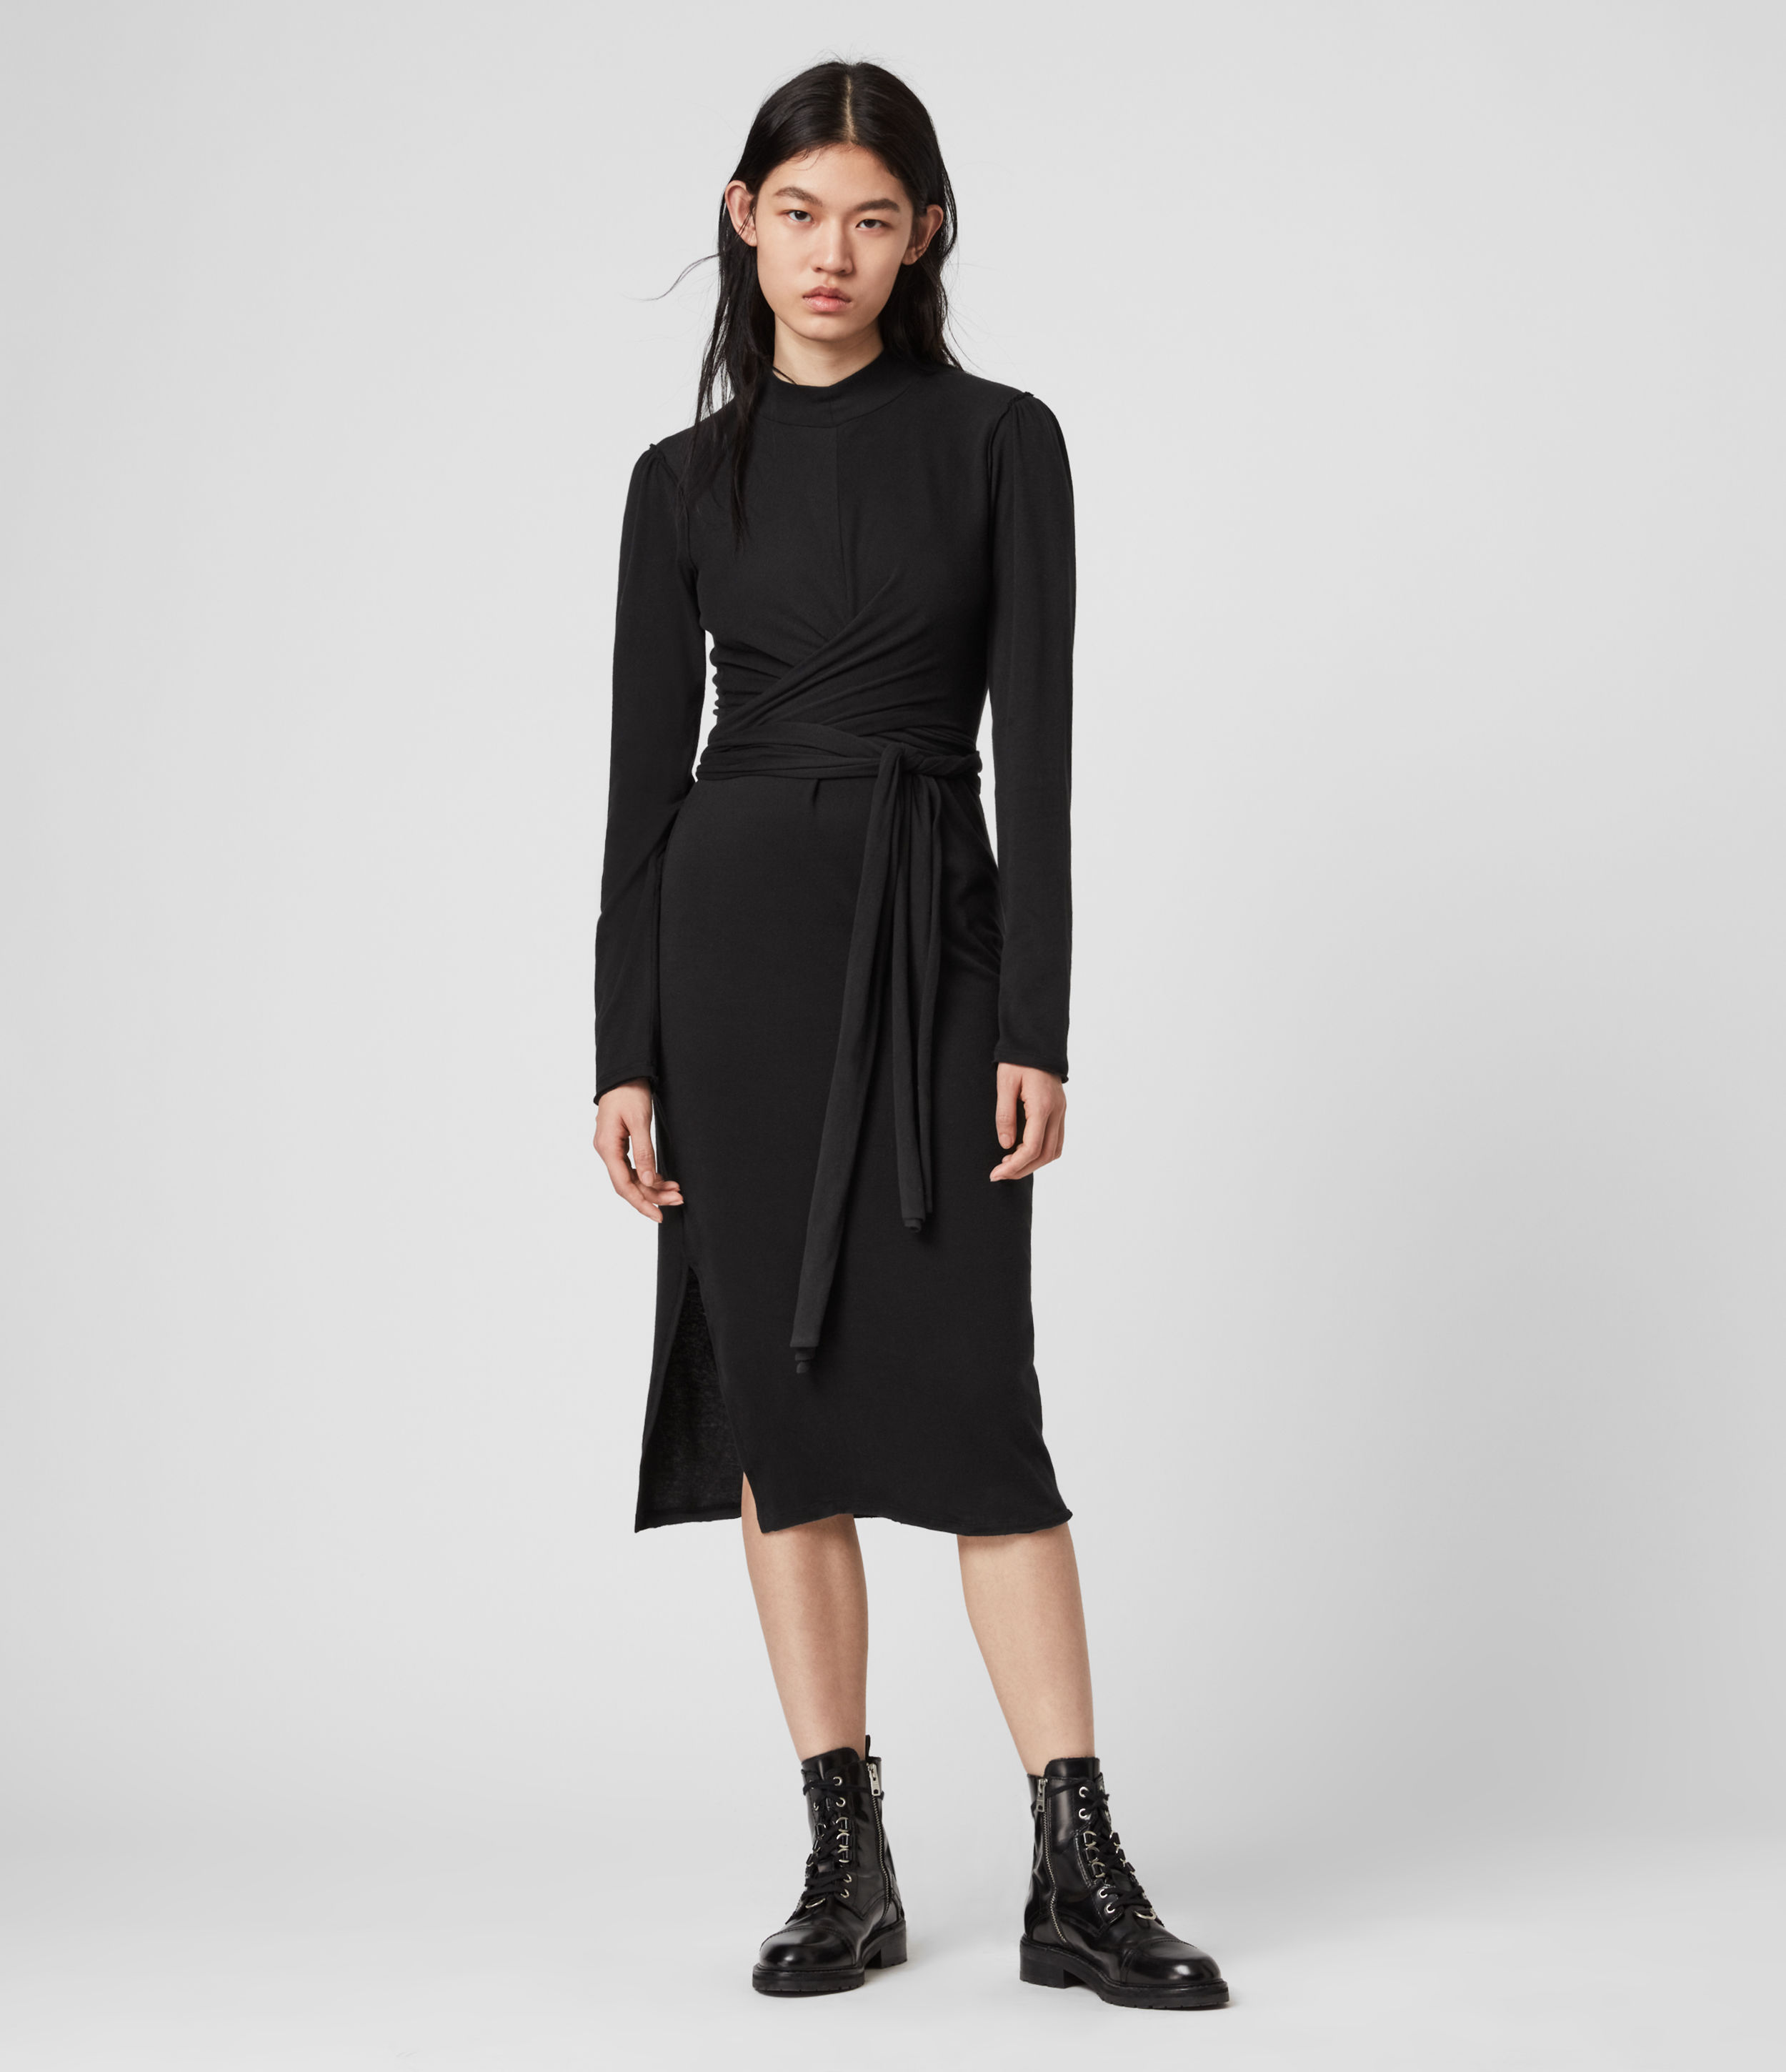 AllSaints Veronika Dress